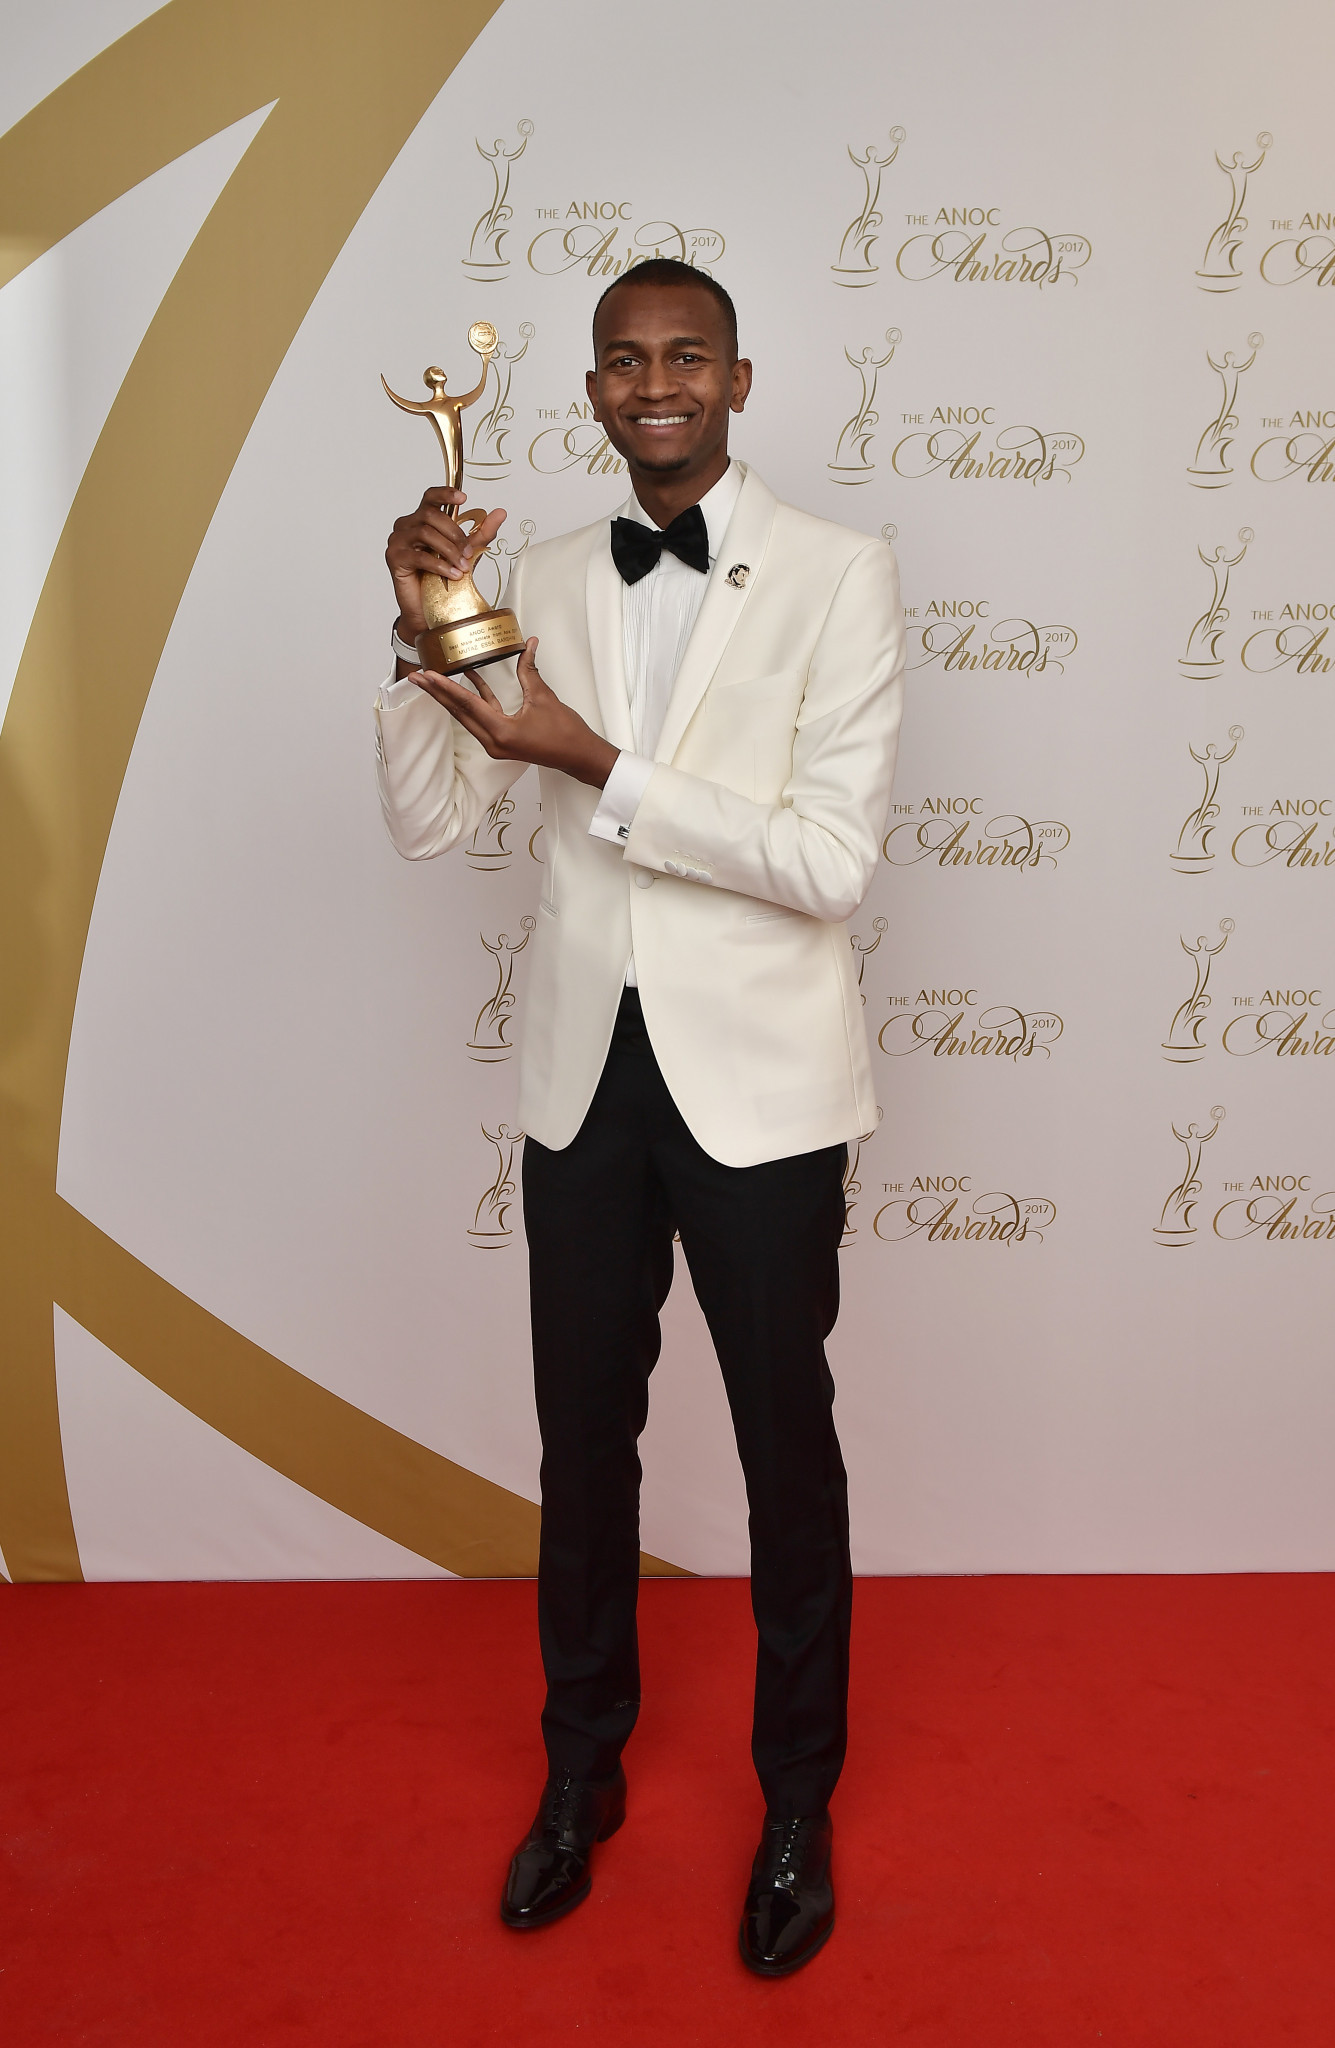 Mutaz Essa Barshim of Qatar, pictured with the Association of National Olympic Committees' award for Best Male Asian Athlete 2017 at its general assembly in Prague, is among the finalists for Male World Athlete of the Year ©Getty Images